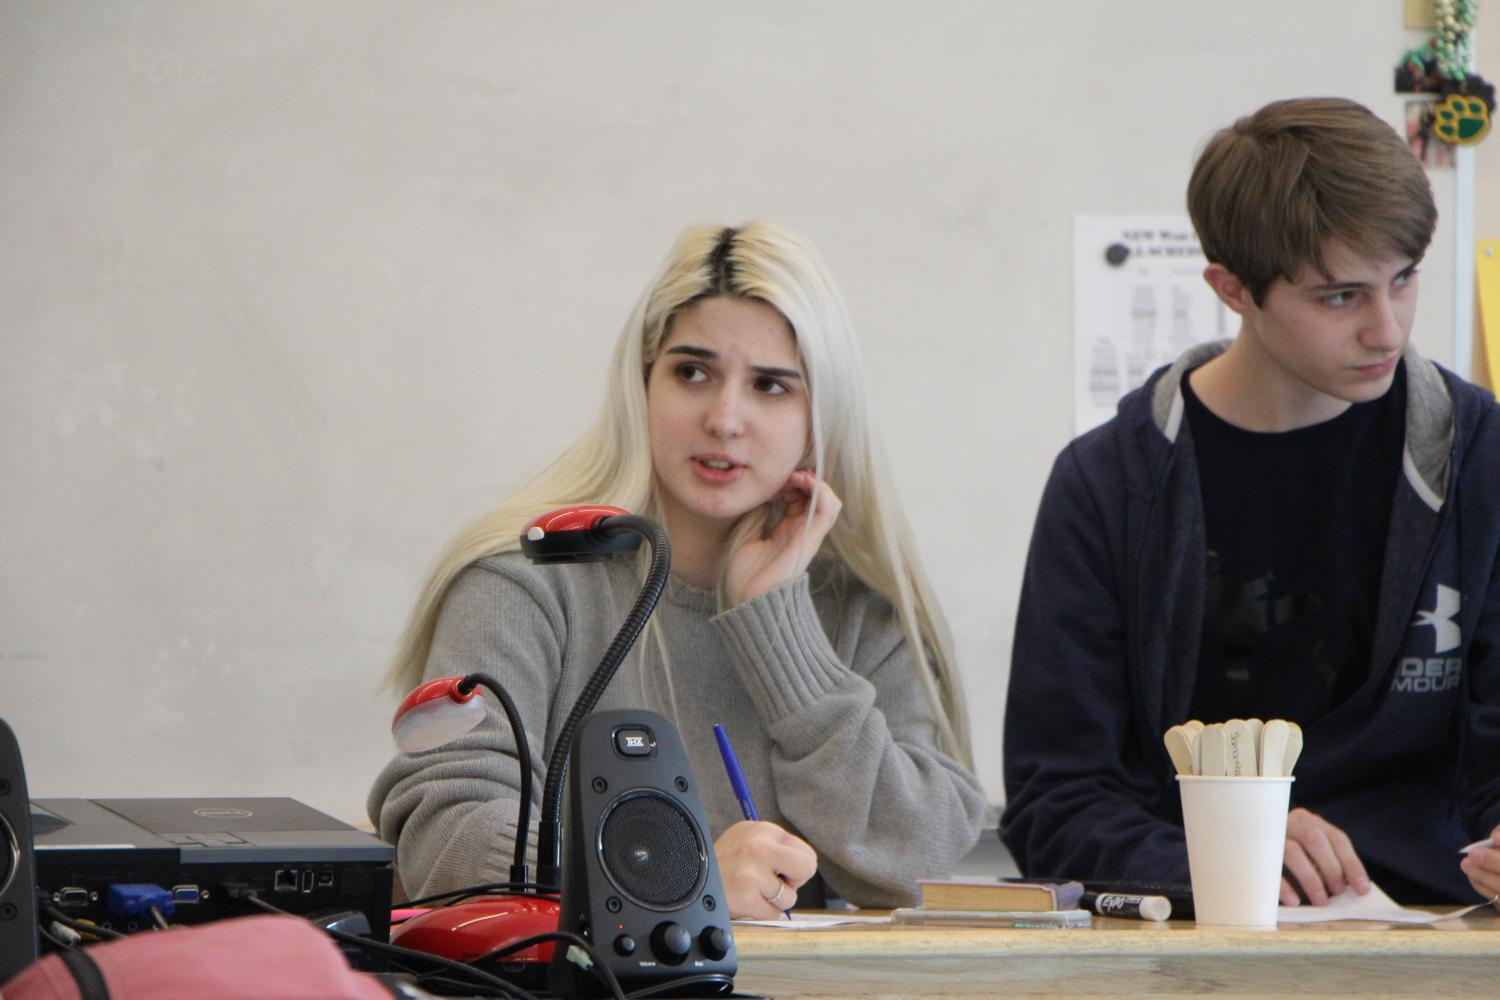 Members of the speech and debate team, Cynthia Medhaug-Aversano, junior, and Haydn Maust, freshman, run through their arguments during a speech and debate meeting. Although they didn't advance to the state competition, three of their teammates did.